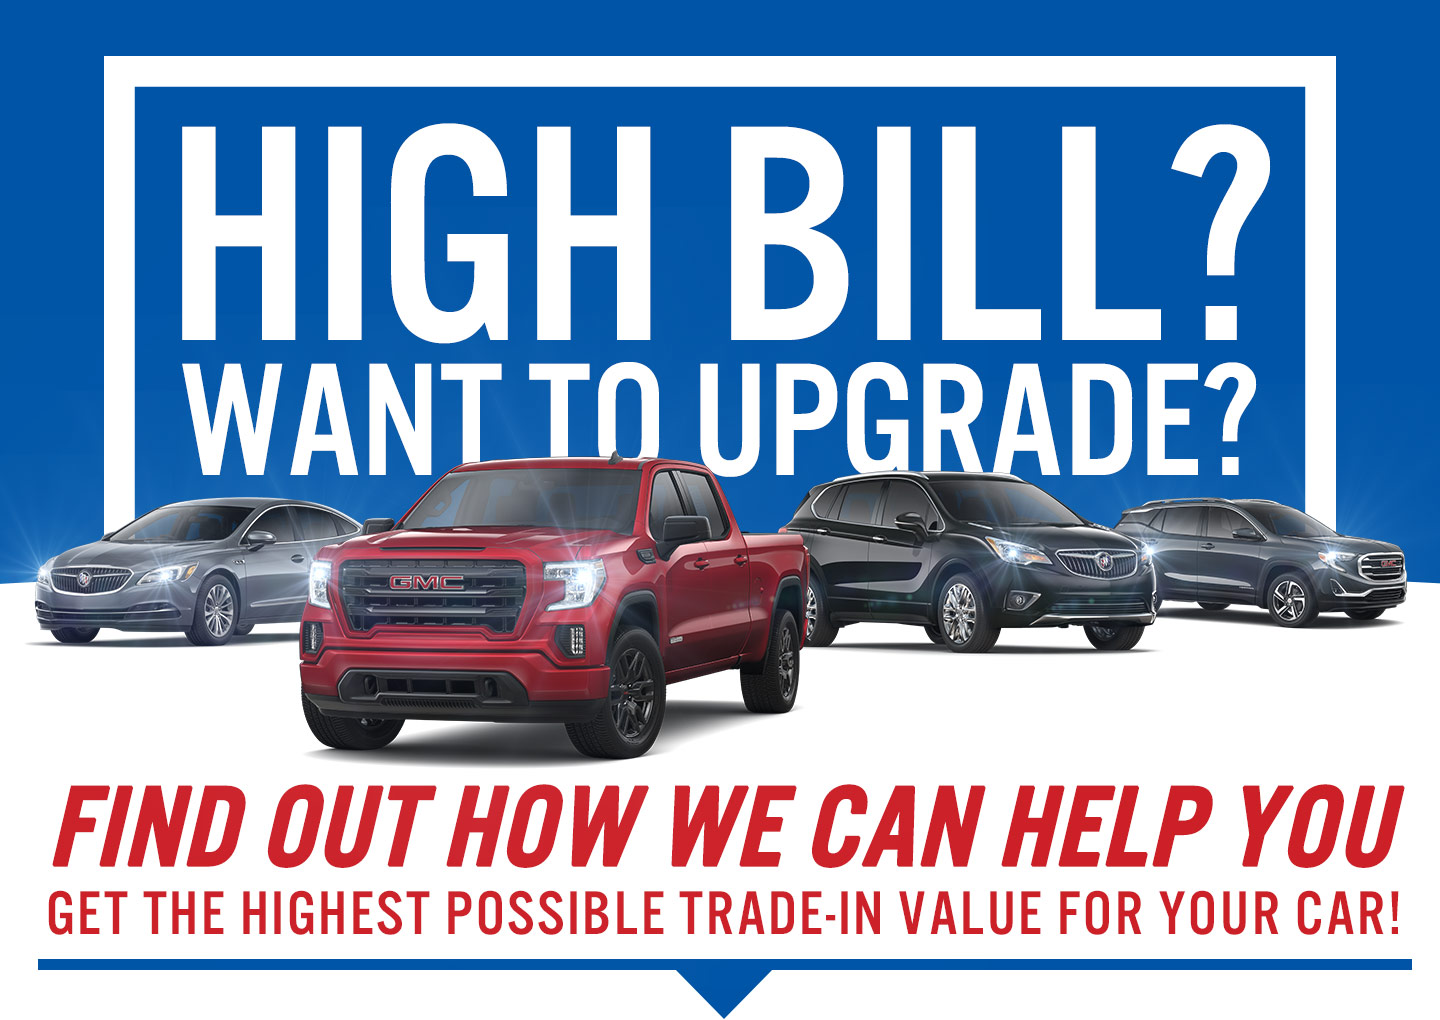 High Bill? Want to Update?